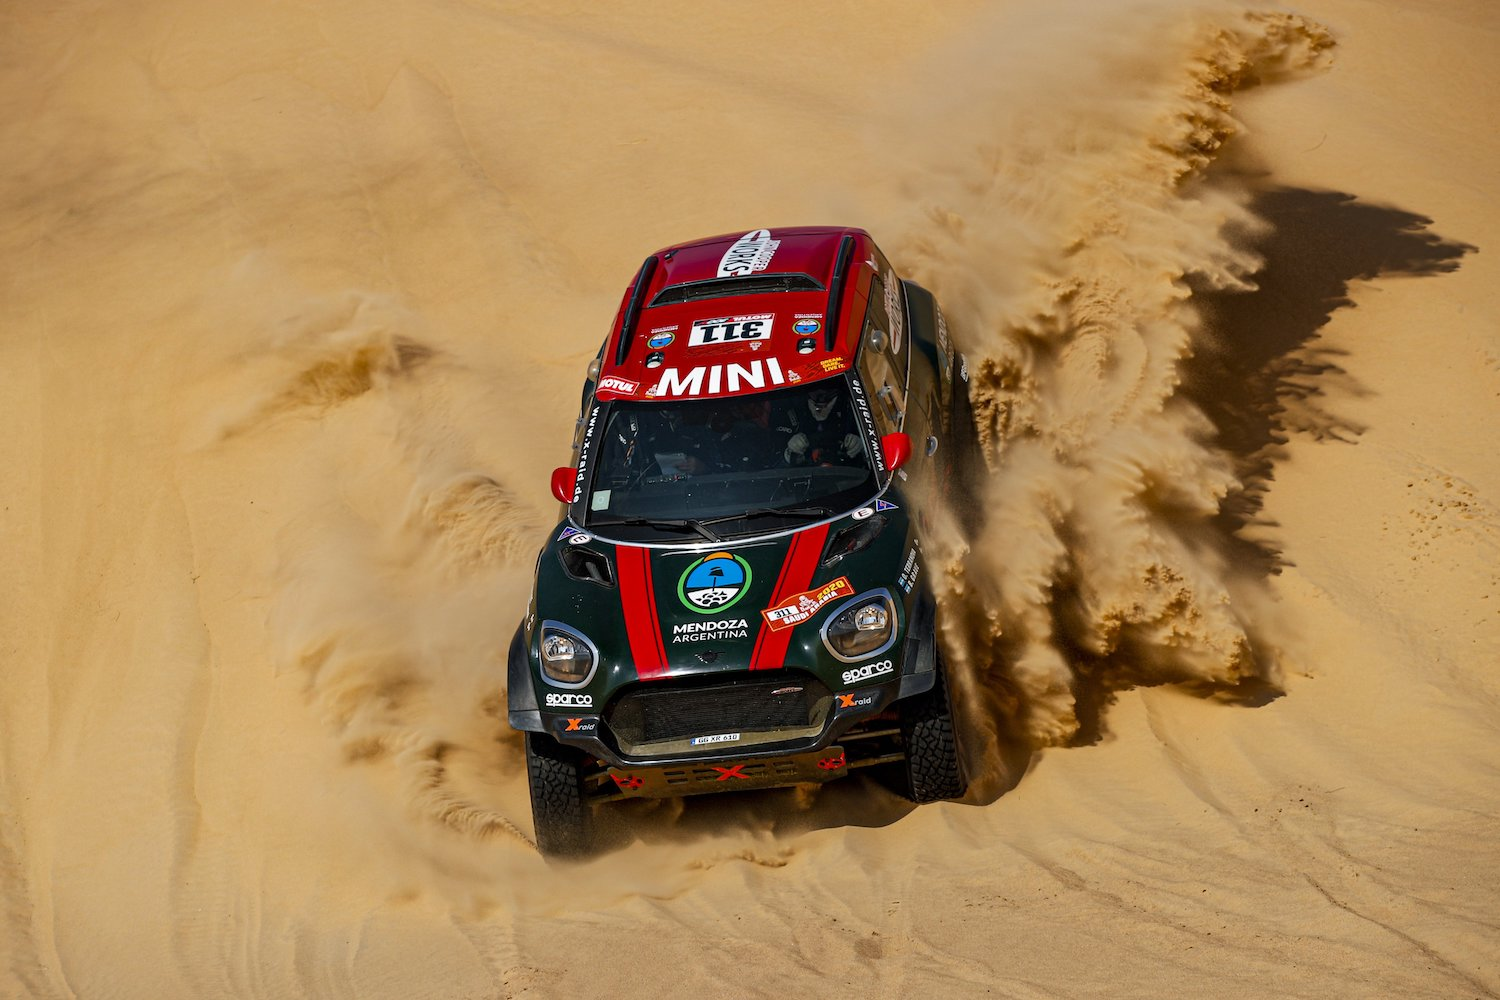 rally car on desert sand action